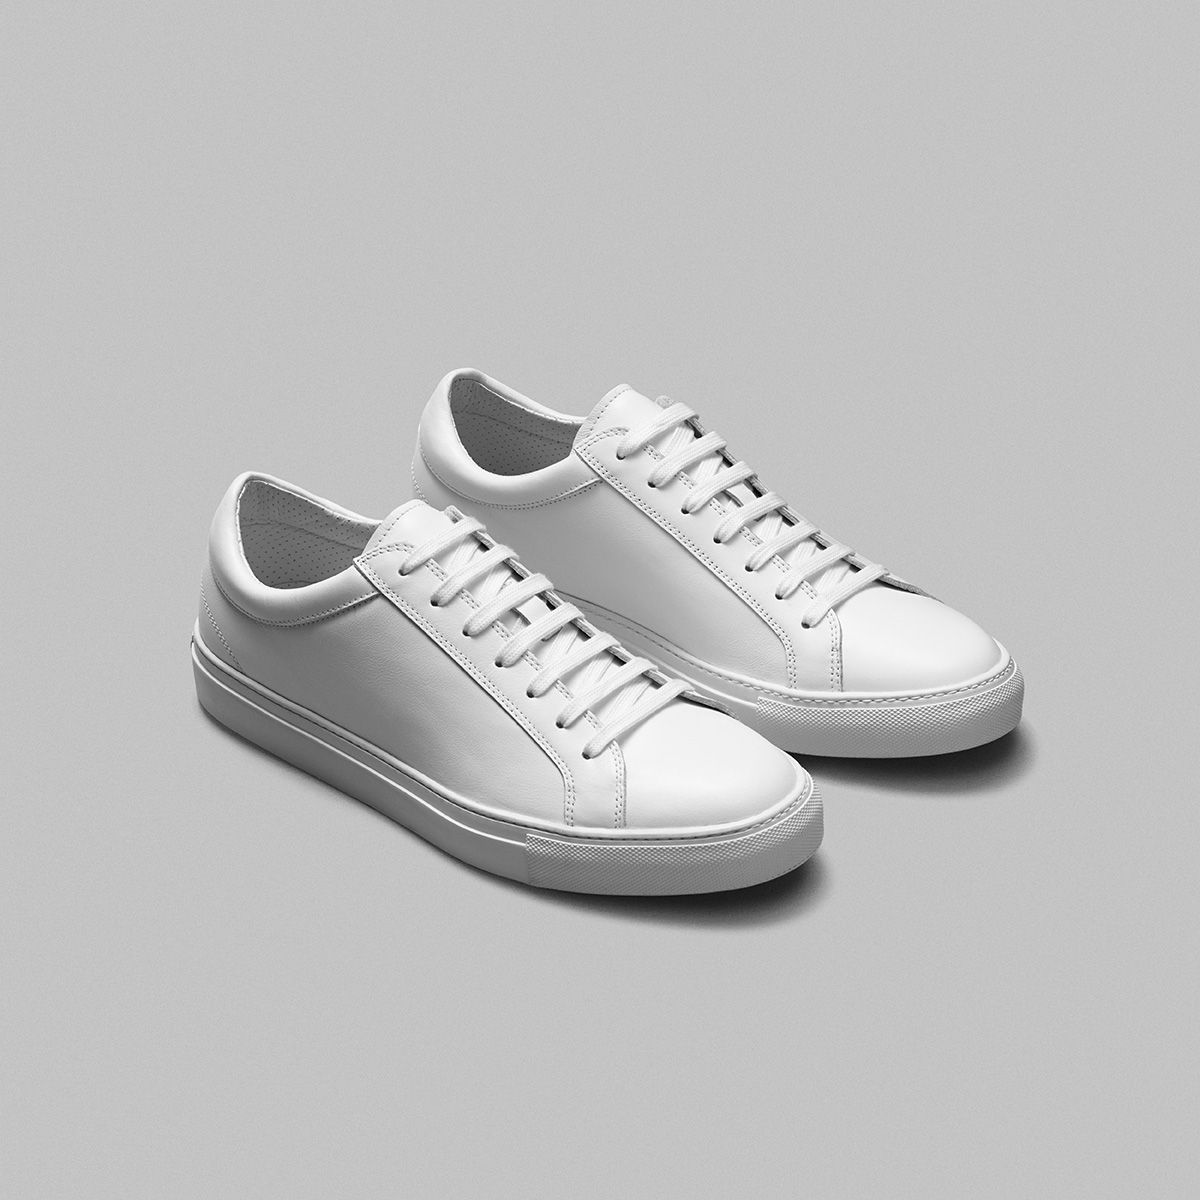 dfa574ddf White Leather Sneaker 100% calf leather with a perforated leather lining  and a stitched on rubber sole. No logos or labels. Made in Italy.